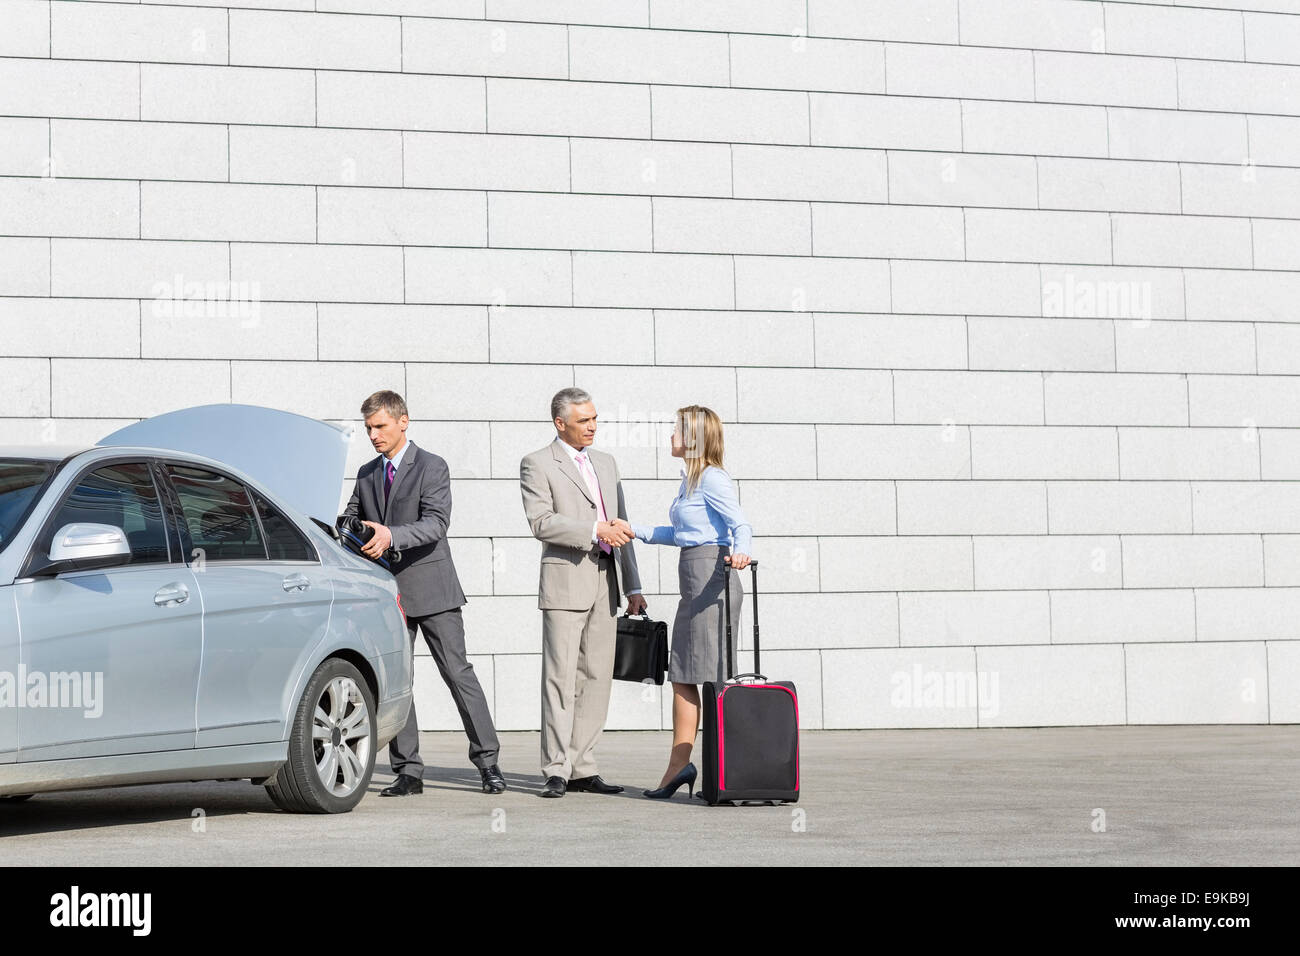 Businesspeople with luggage shaking hands outside car on street - Stock Image